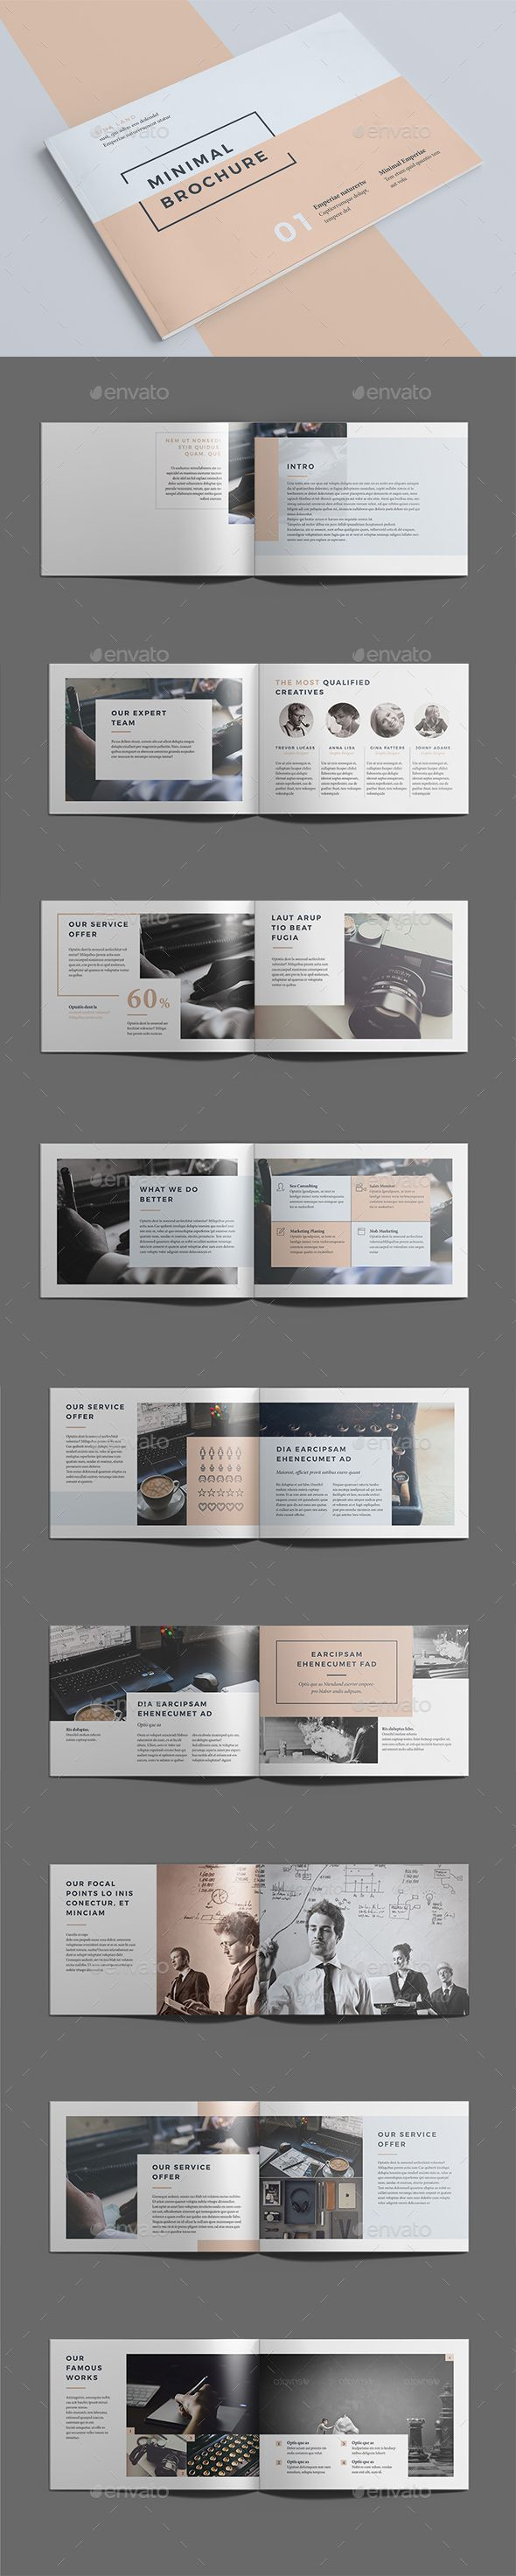 workbook template indesign - 1000 ideas about flyer template on pinterest flyer